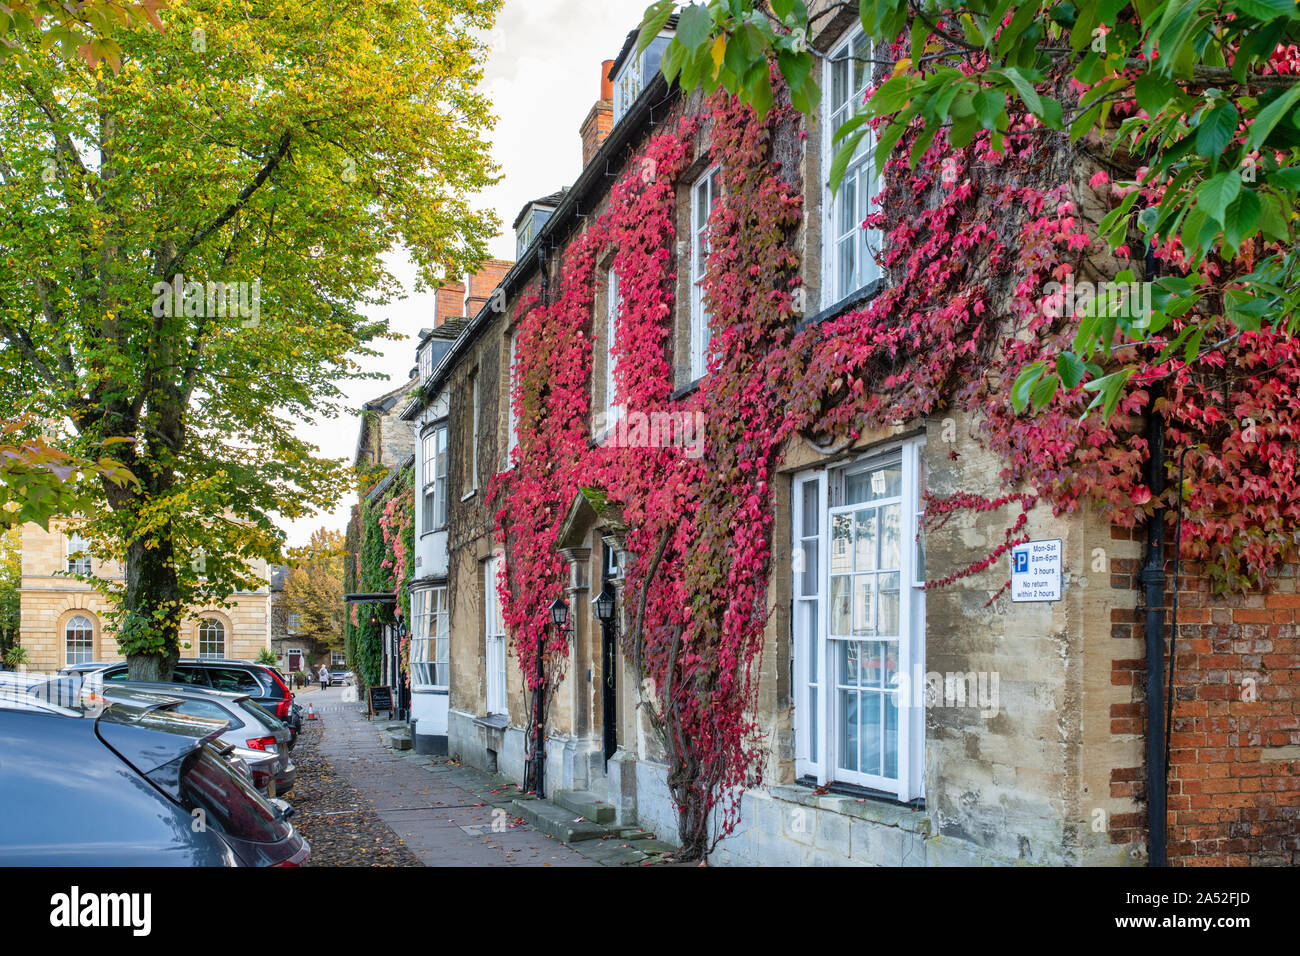 Parthenocissus Tricuspidata. Boston Efeu auf ein Haus im Herbst in Woodstock, Oxfordshire, UK Stockfoto